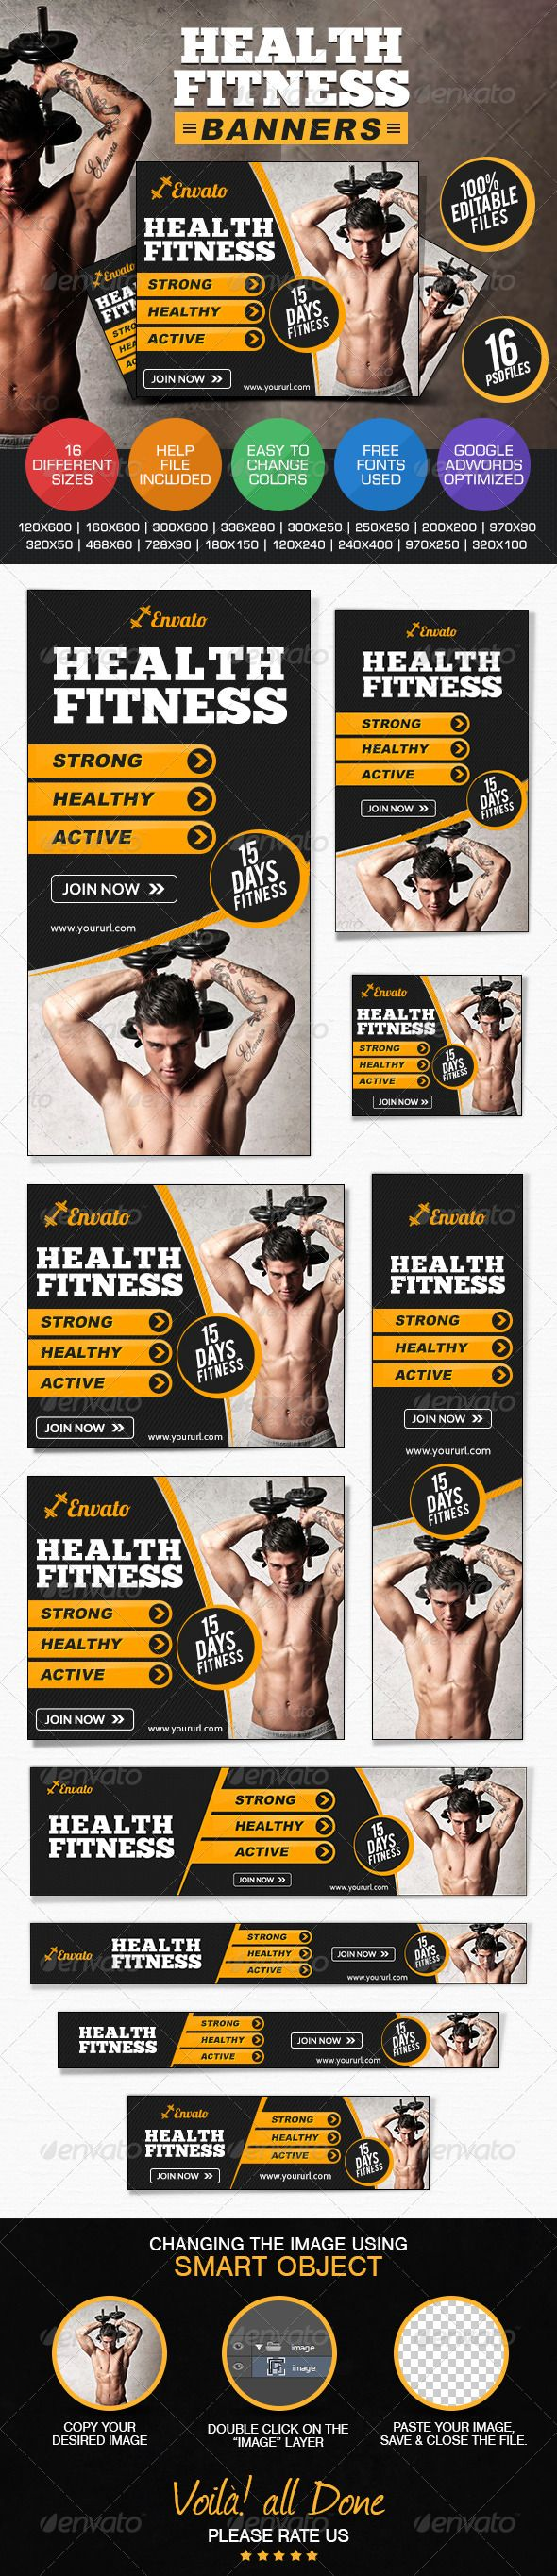 Health & Fitness Banners - Banners & Ads Web Template PSD. Download here: http://graphicriver.net/item/health-fitness-banners/7688647?s_rank=37&ref=yinkira